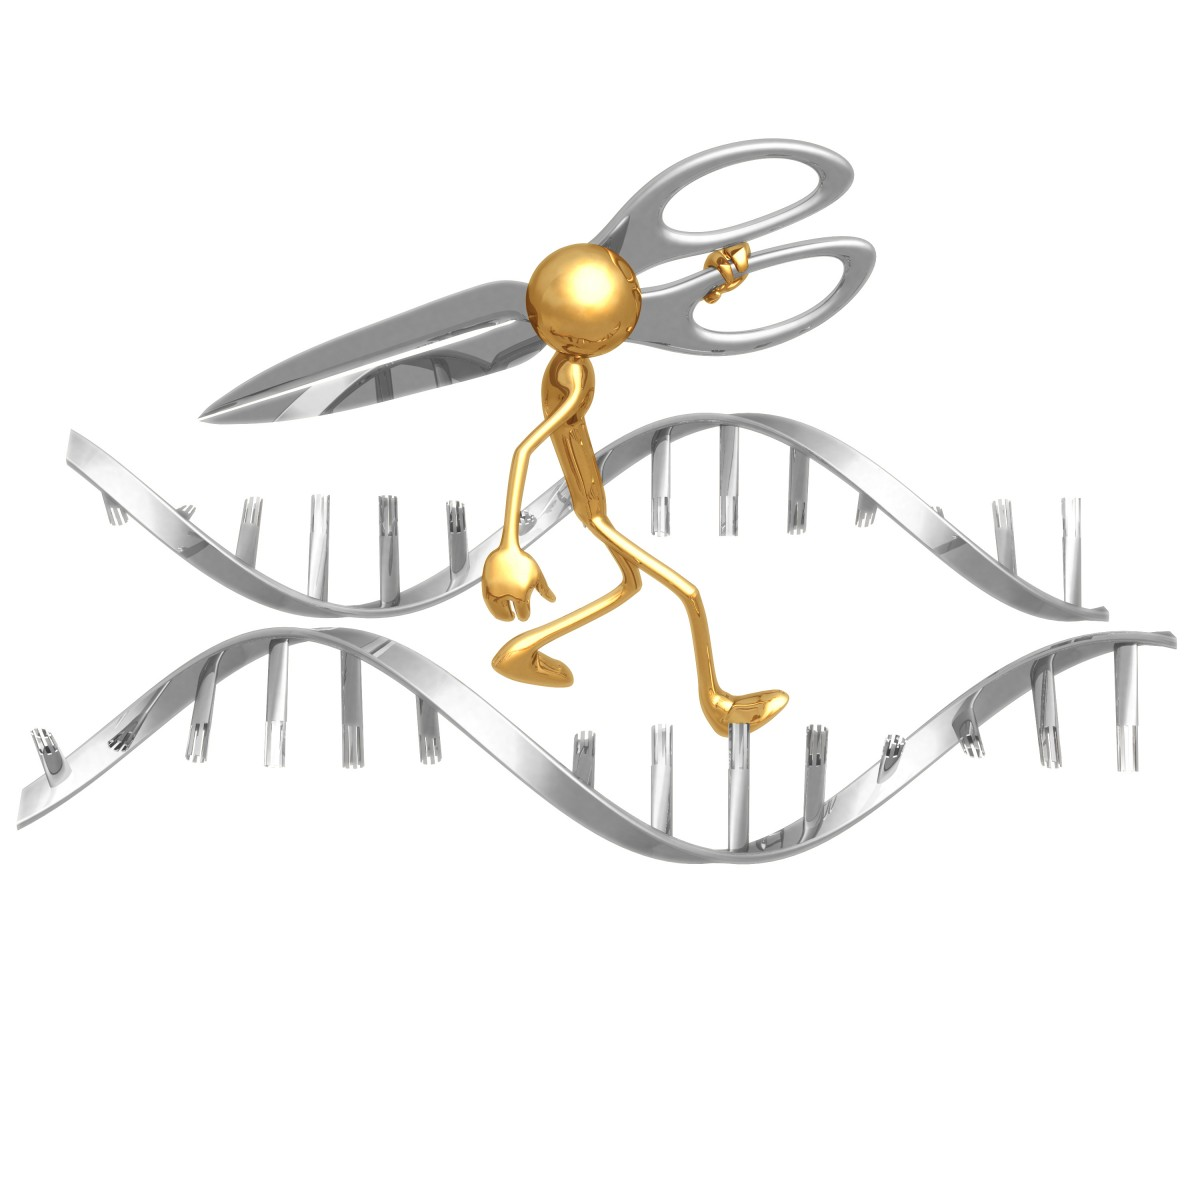 Gene Targeting Therapy Investigated in SMA Cells